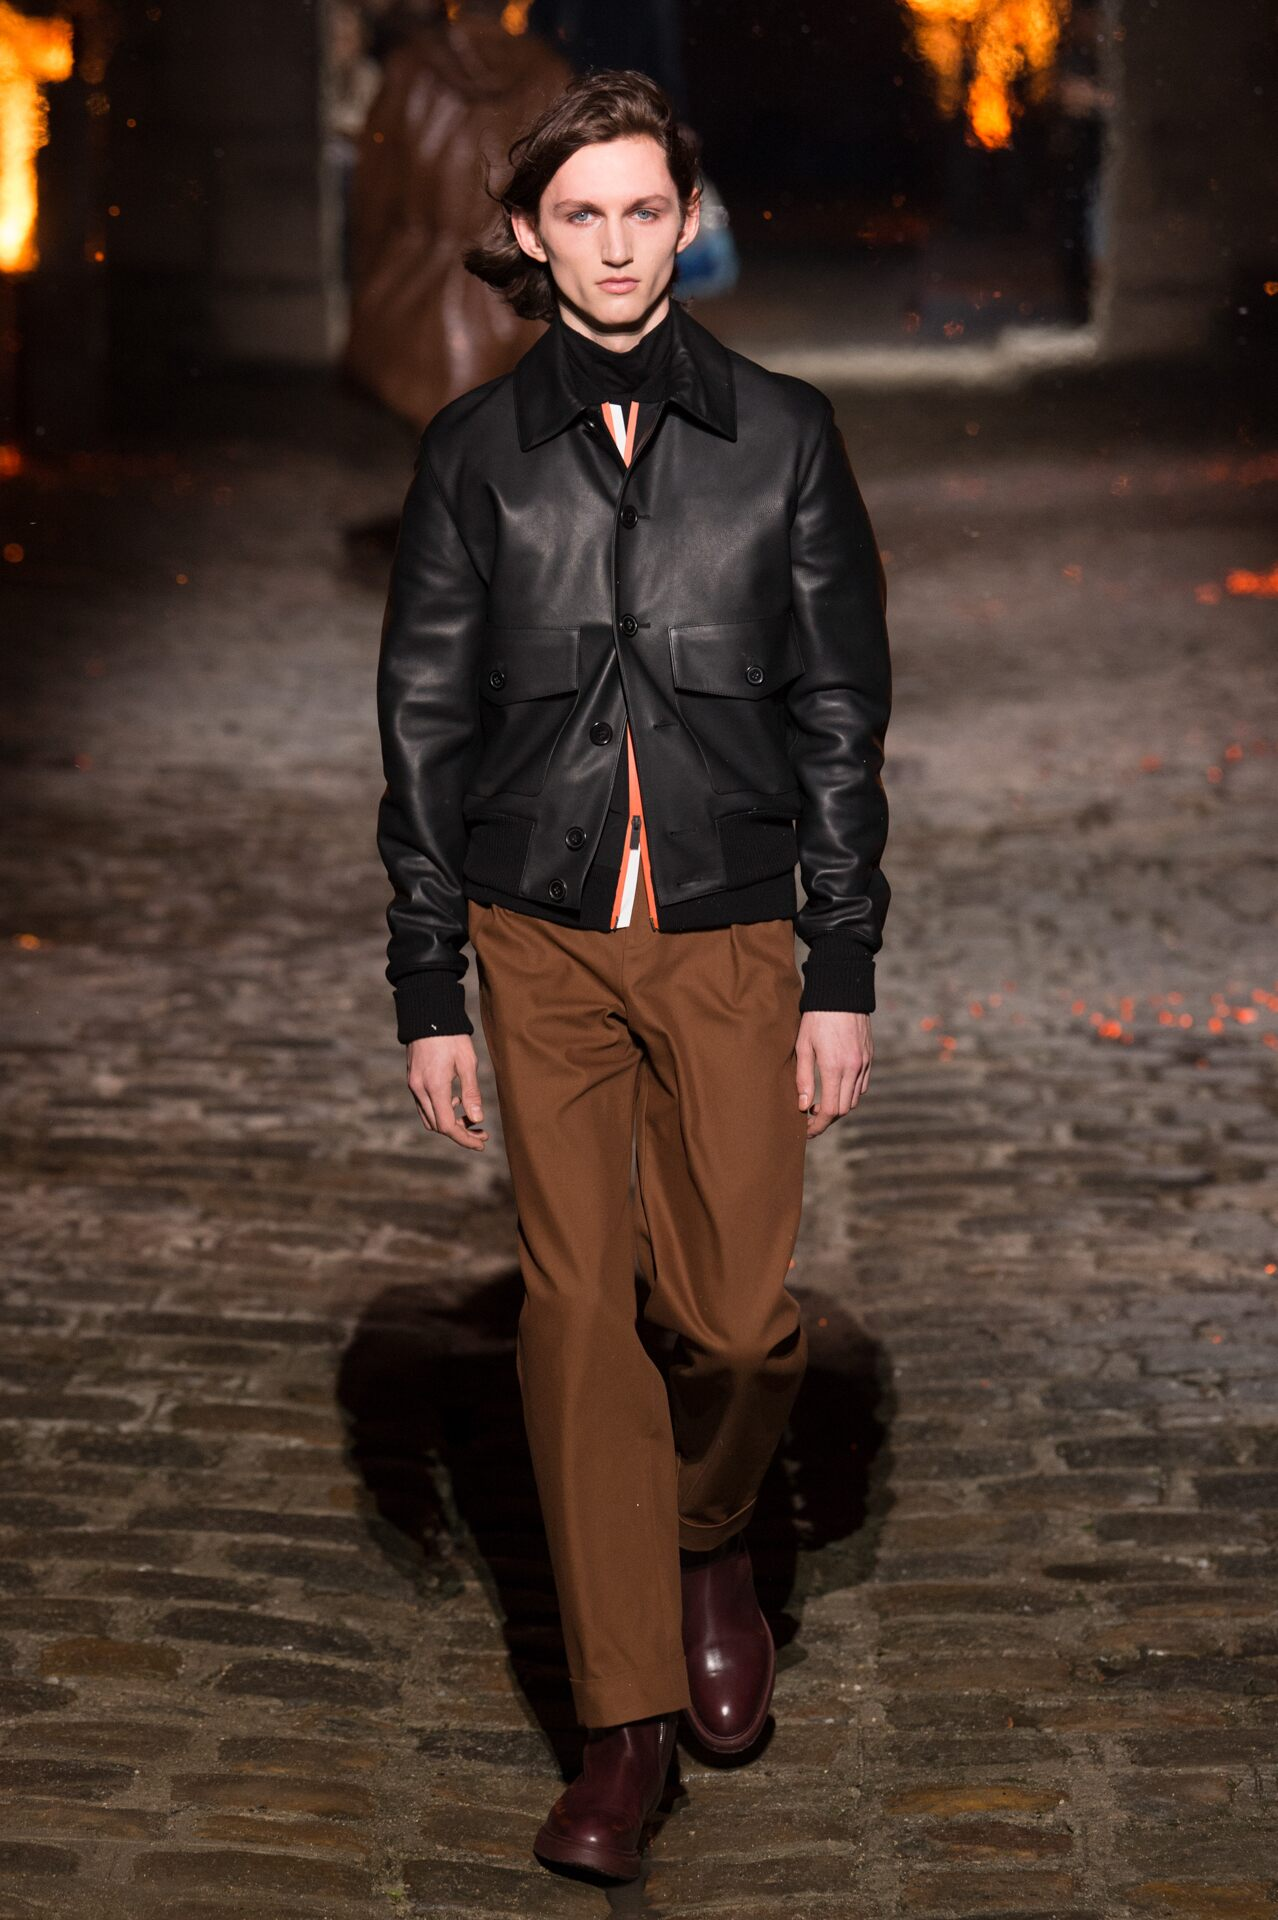 2018 Hermès Man Catwalk